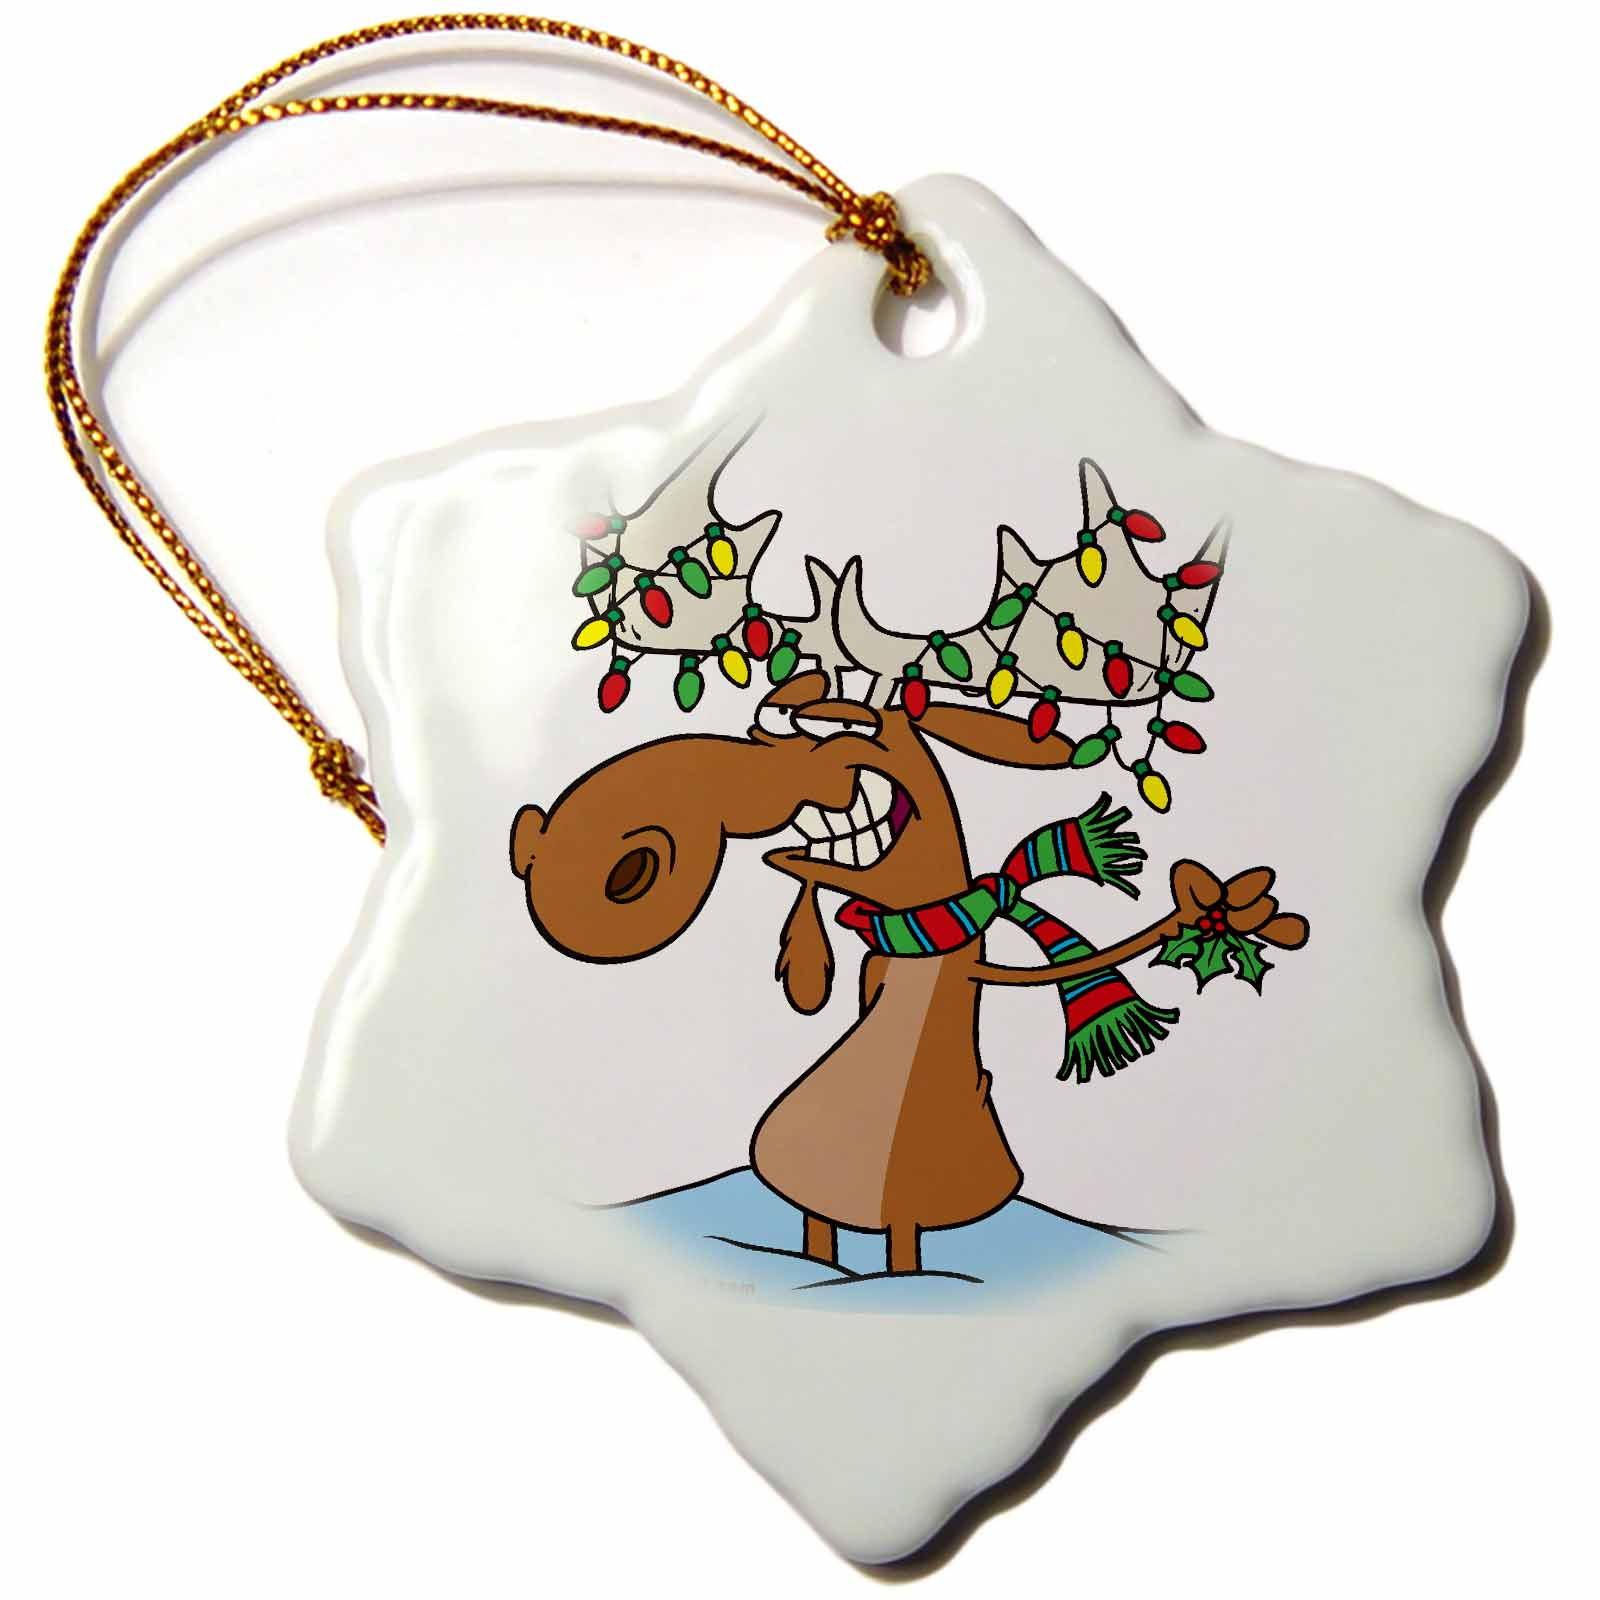 3dRose Funny Silly Christmas Moose Cartoon, Snowflake Ornament, Porcelain, 3-inch